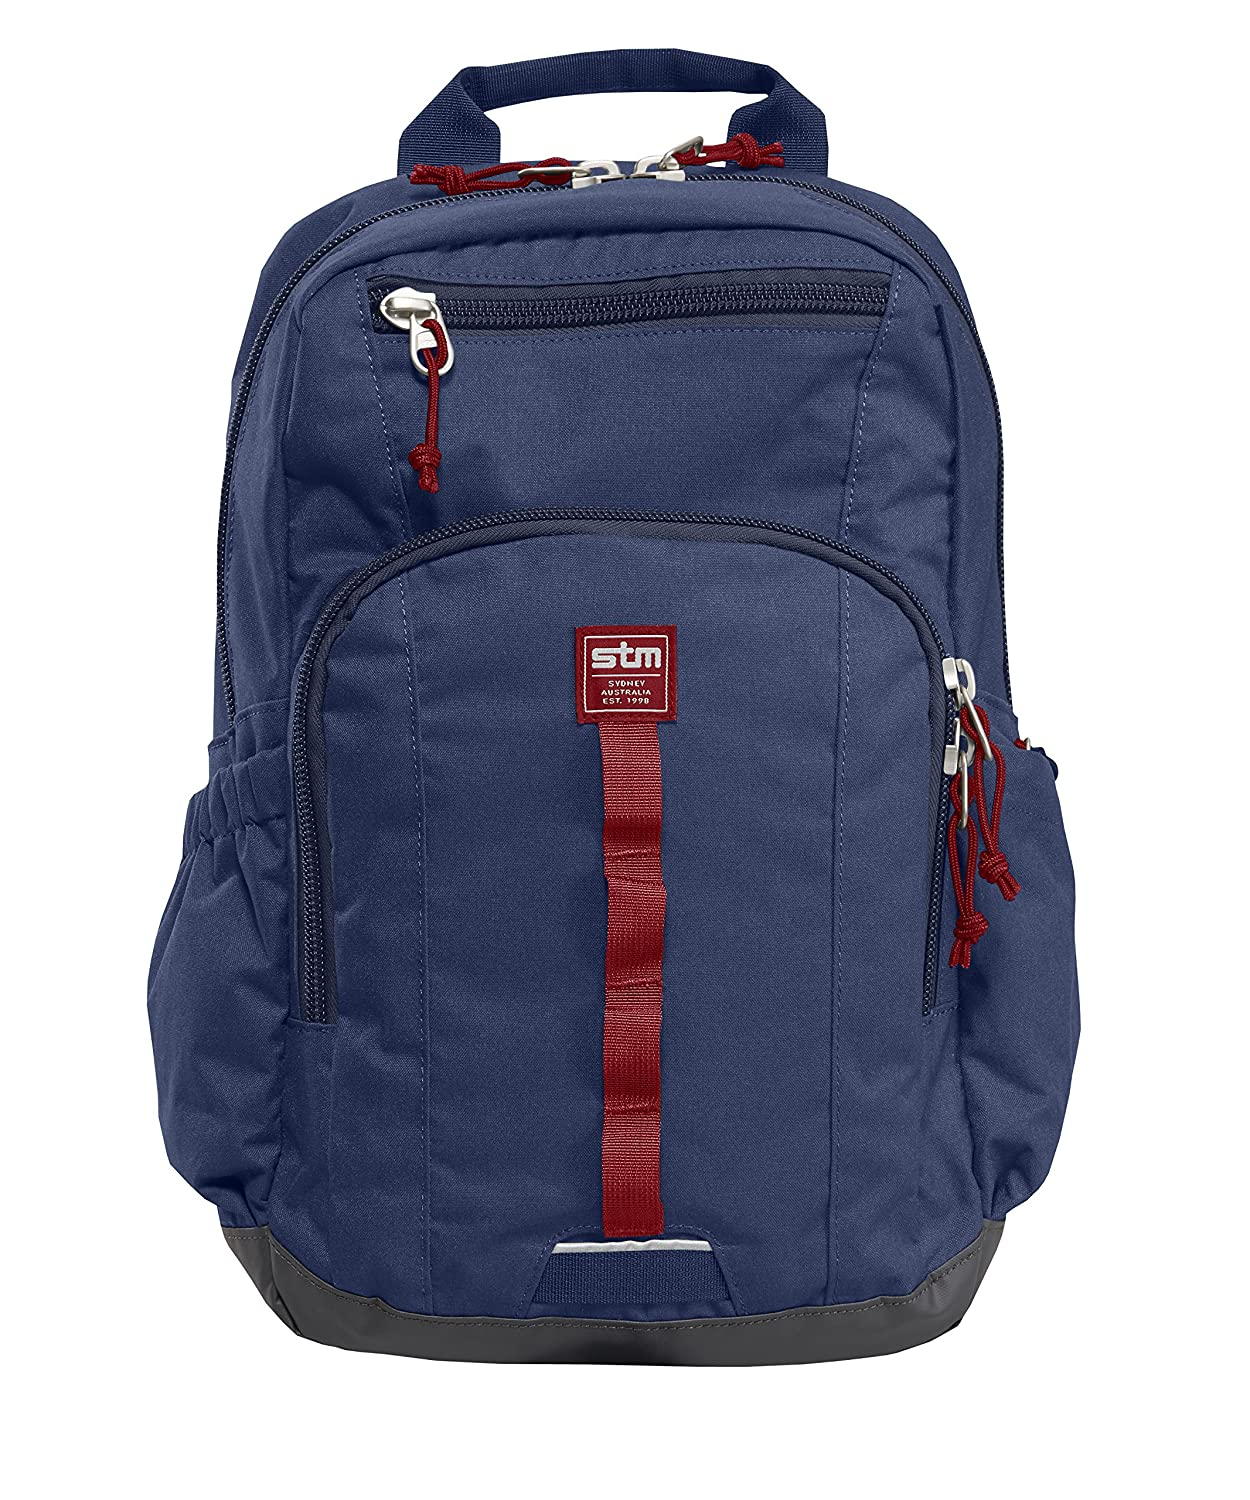 Stm Prime 13 Laptop Backpack- Fenix Toulouse Handball 6433a519c4621